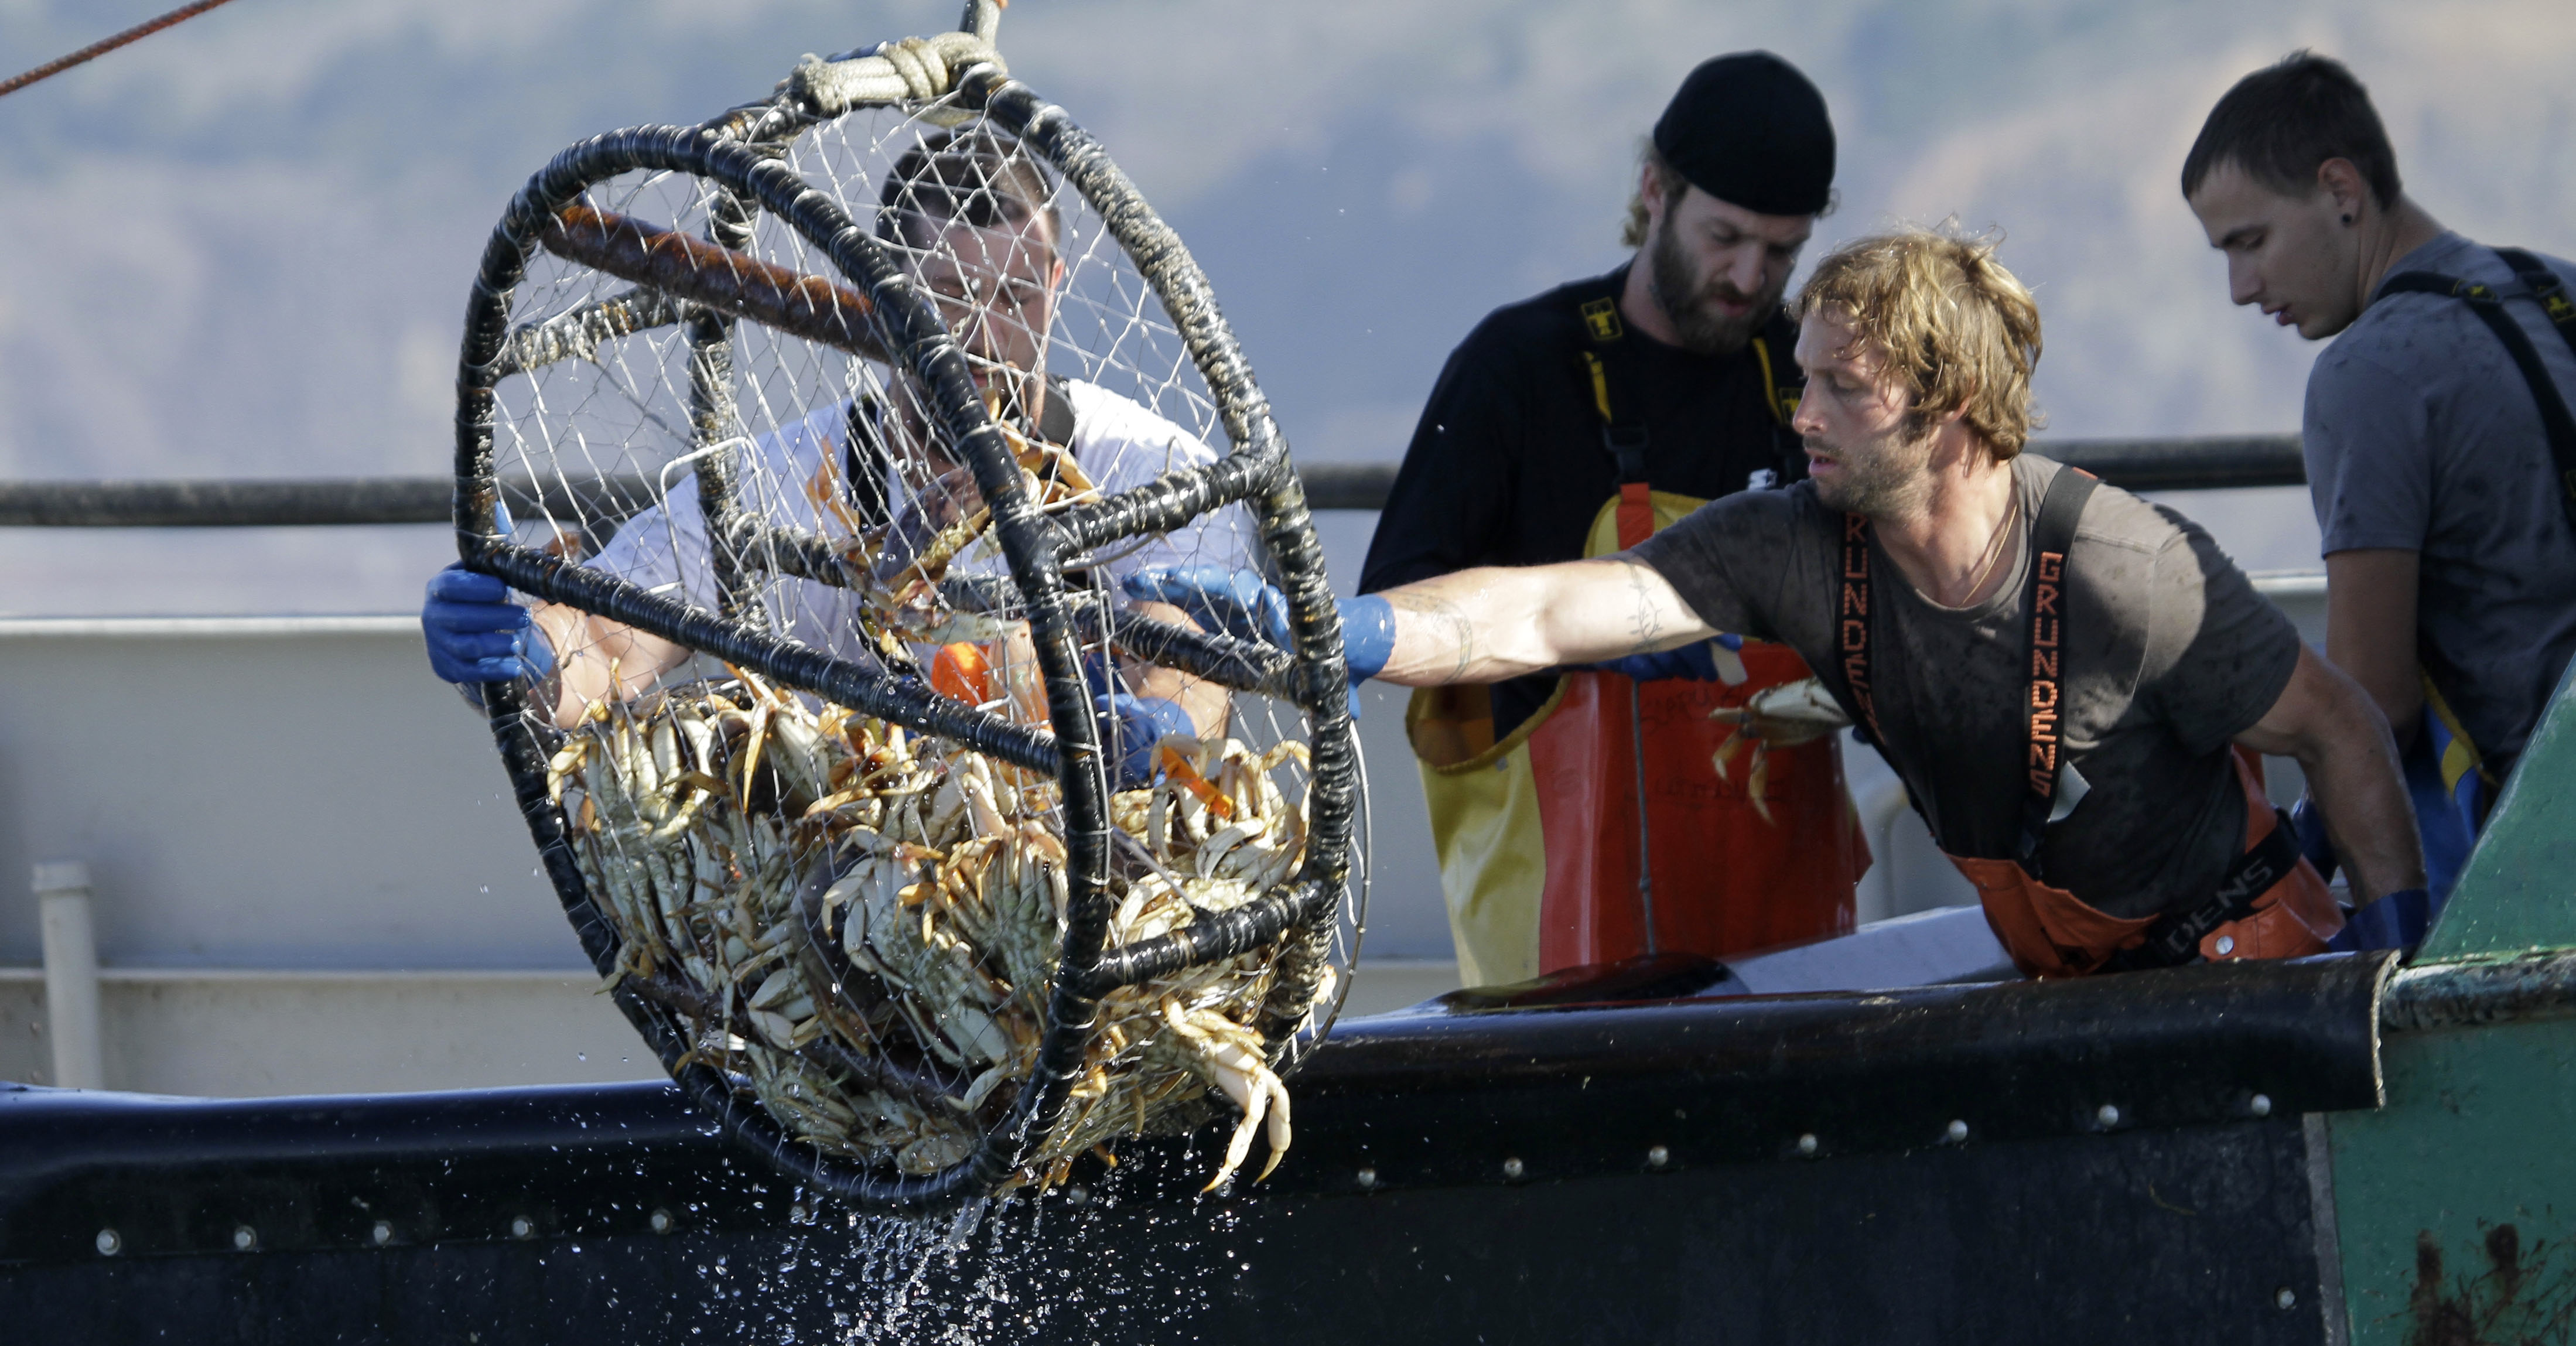 The 10 Most Dangerous Jobs In the US Aren't What You'd Expect